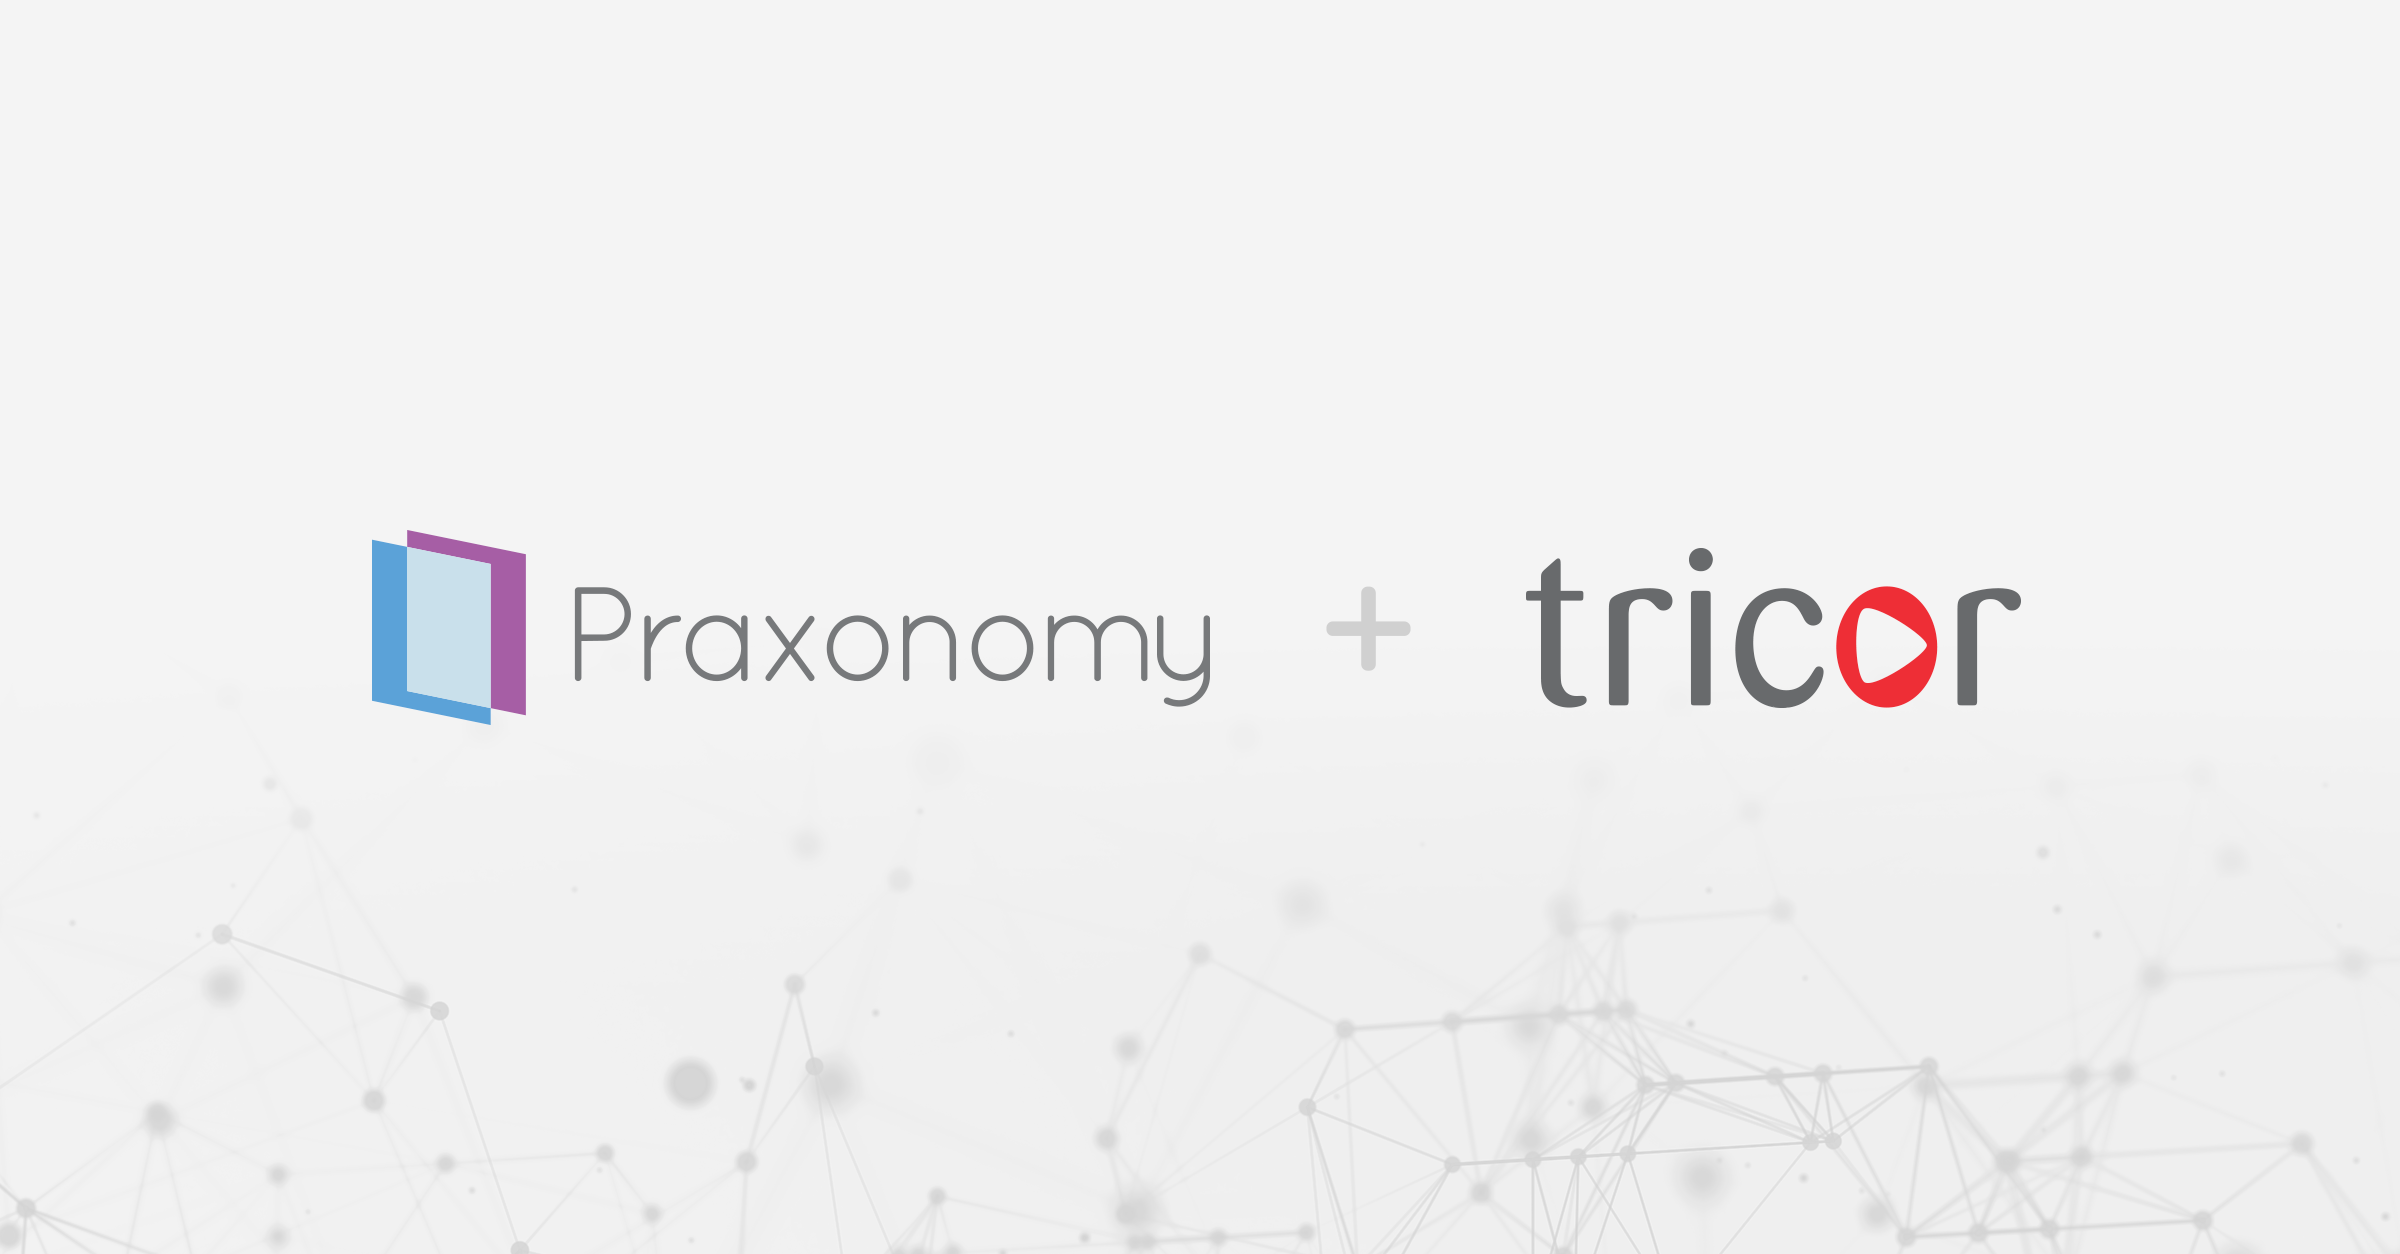 Praxonomy Enters Next Chapter with a Strategic Investment from Tricor